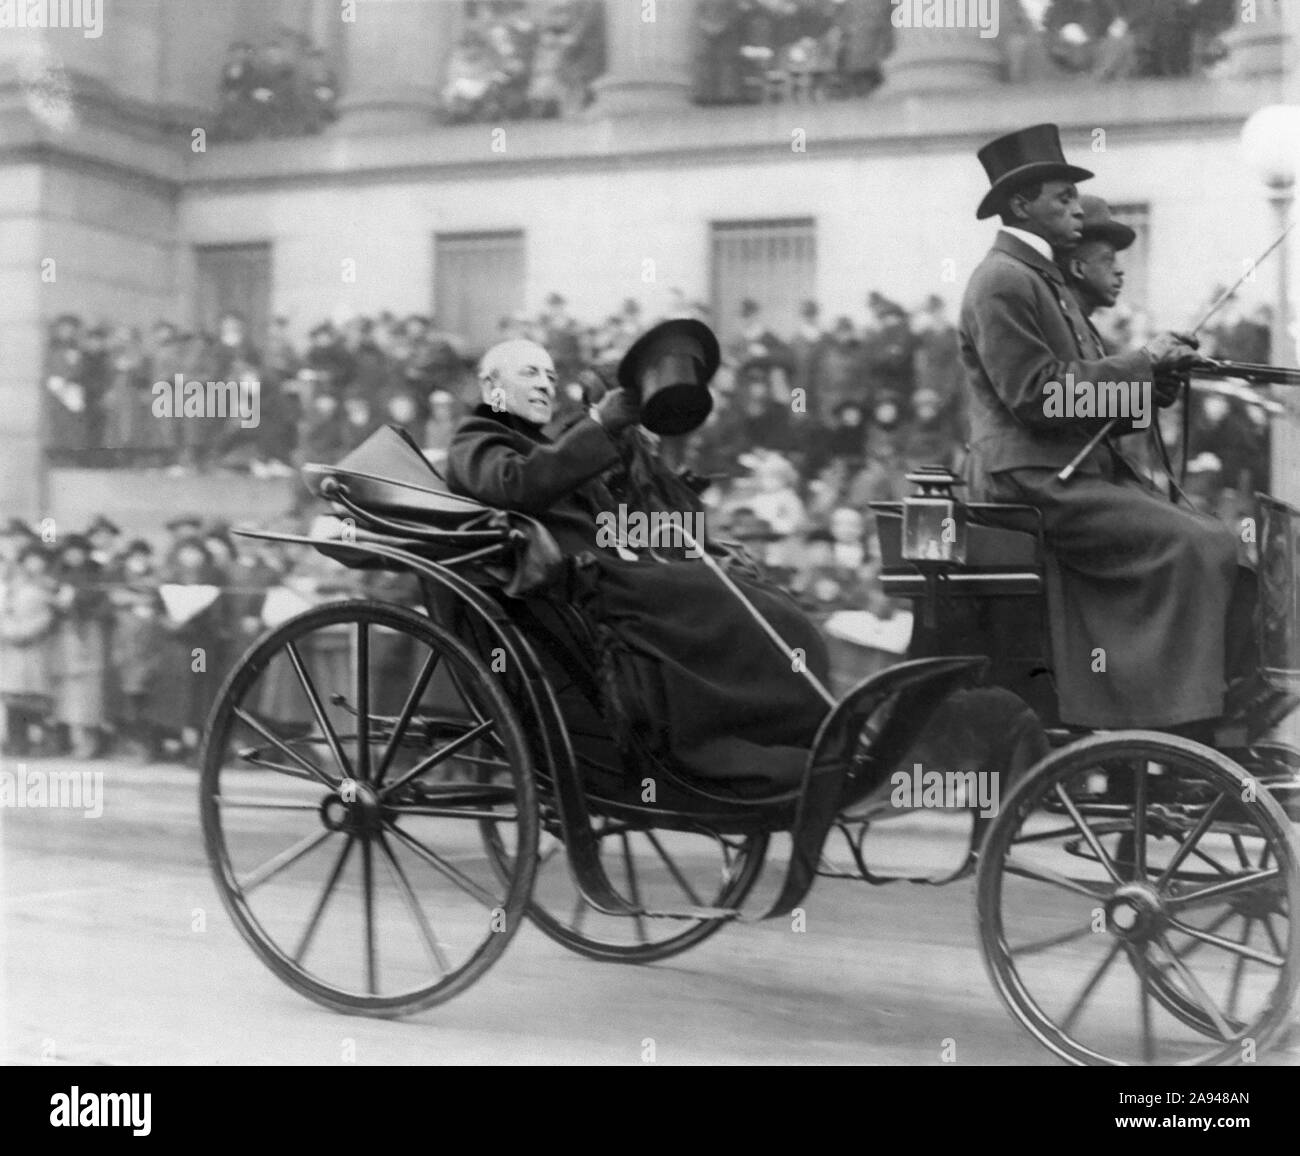 Former U.S President Woodrow Wilson and his Wife Edith Bolling Wilson Riding in Horse-drawn Carriage to Burial of Unknown Soldier, Armistice Day, Photograph by Herbert E. French, National Photo Company, November 11, 1921 Stock Photo